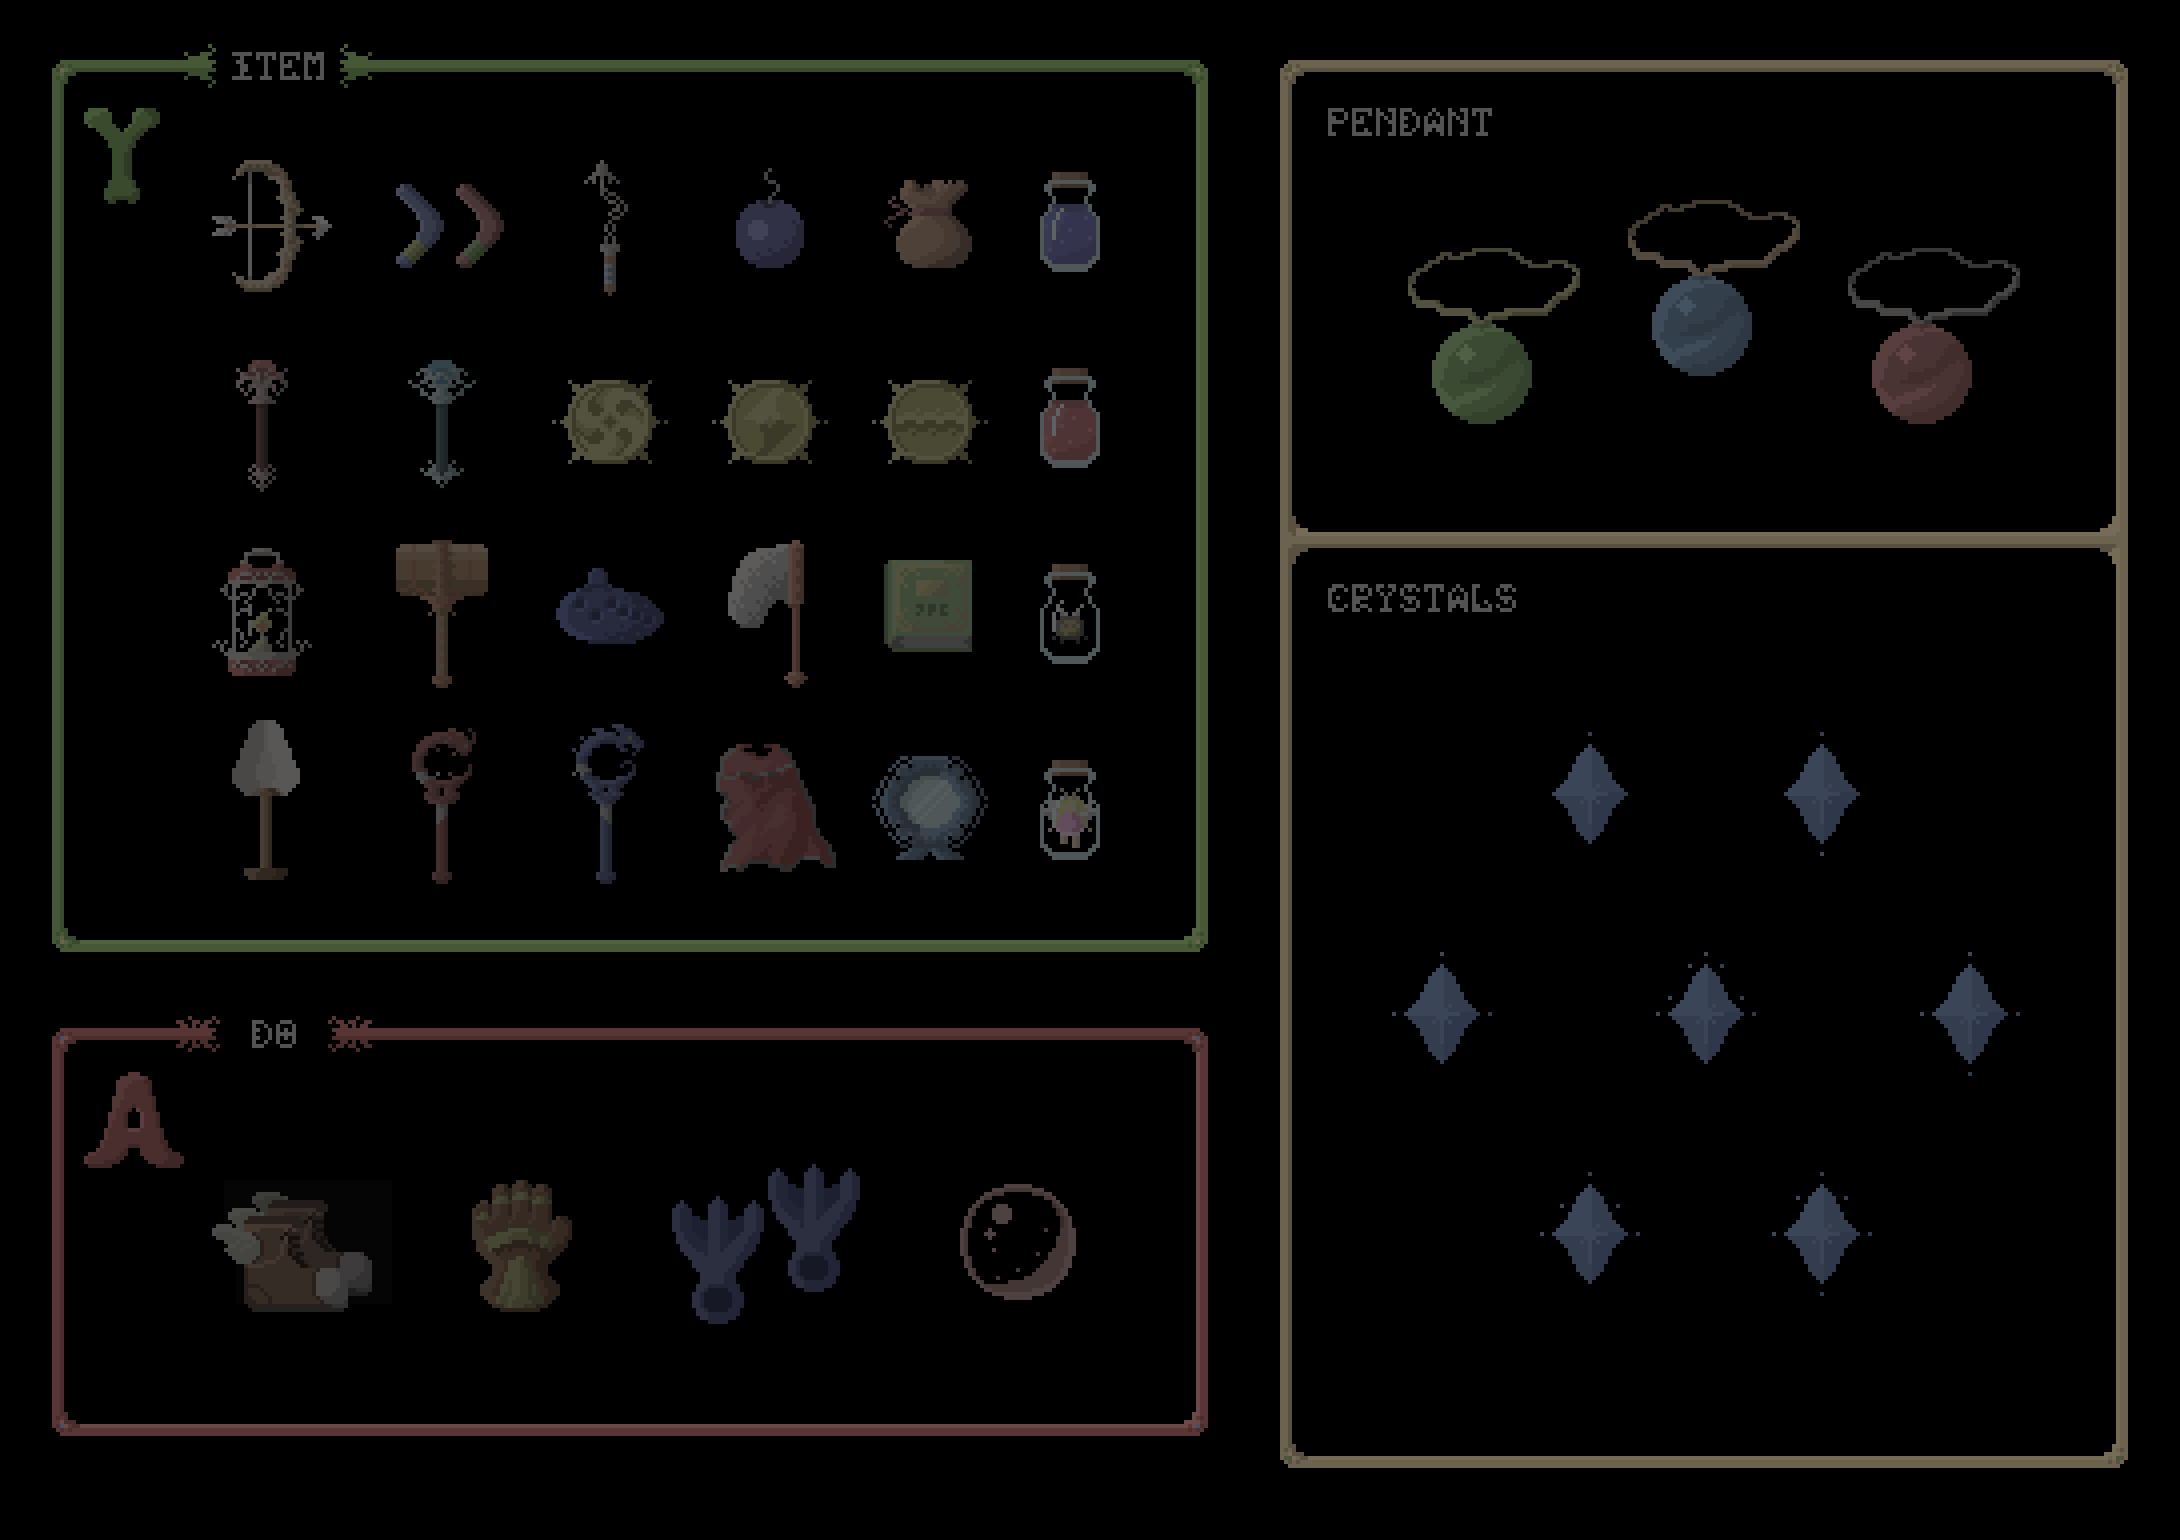 Zelda: A Link to the past - items | OpenGameArt org